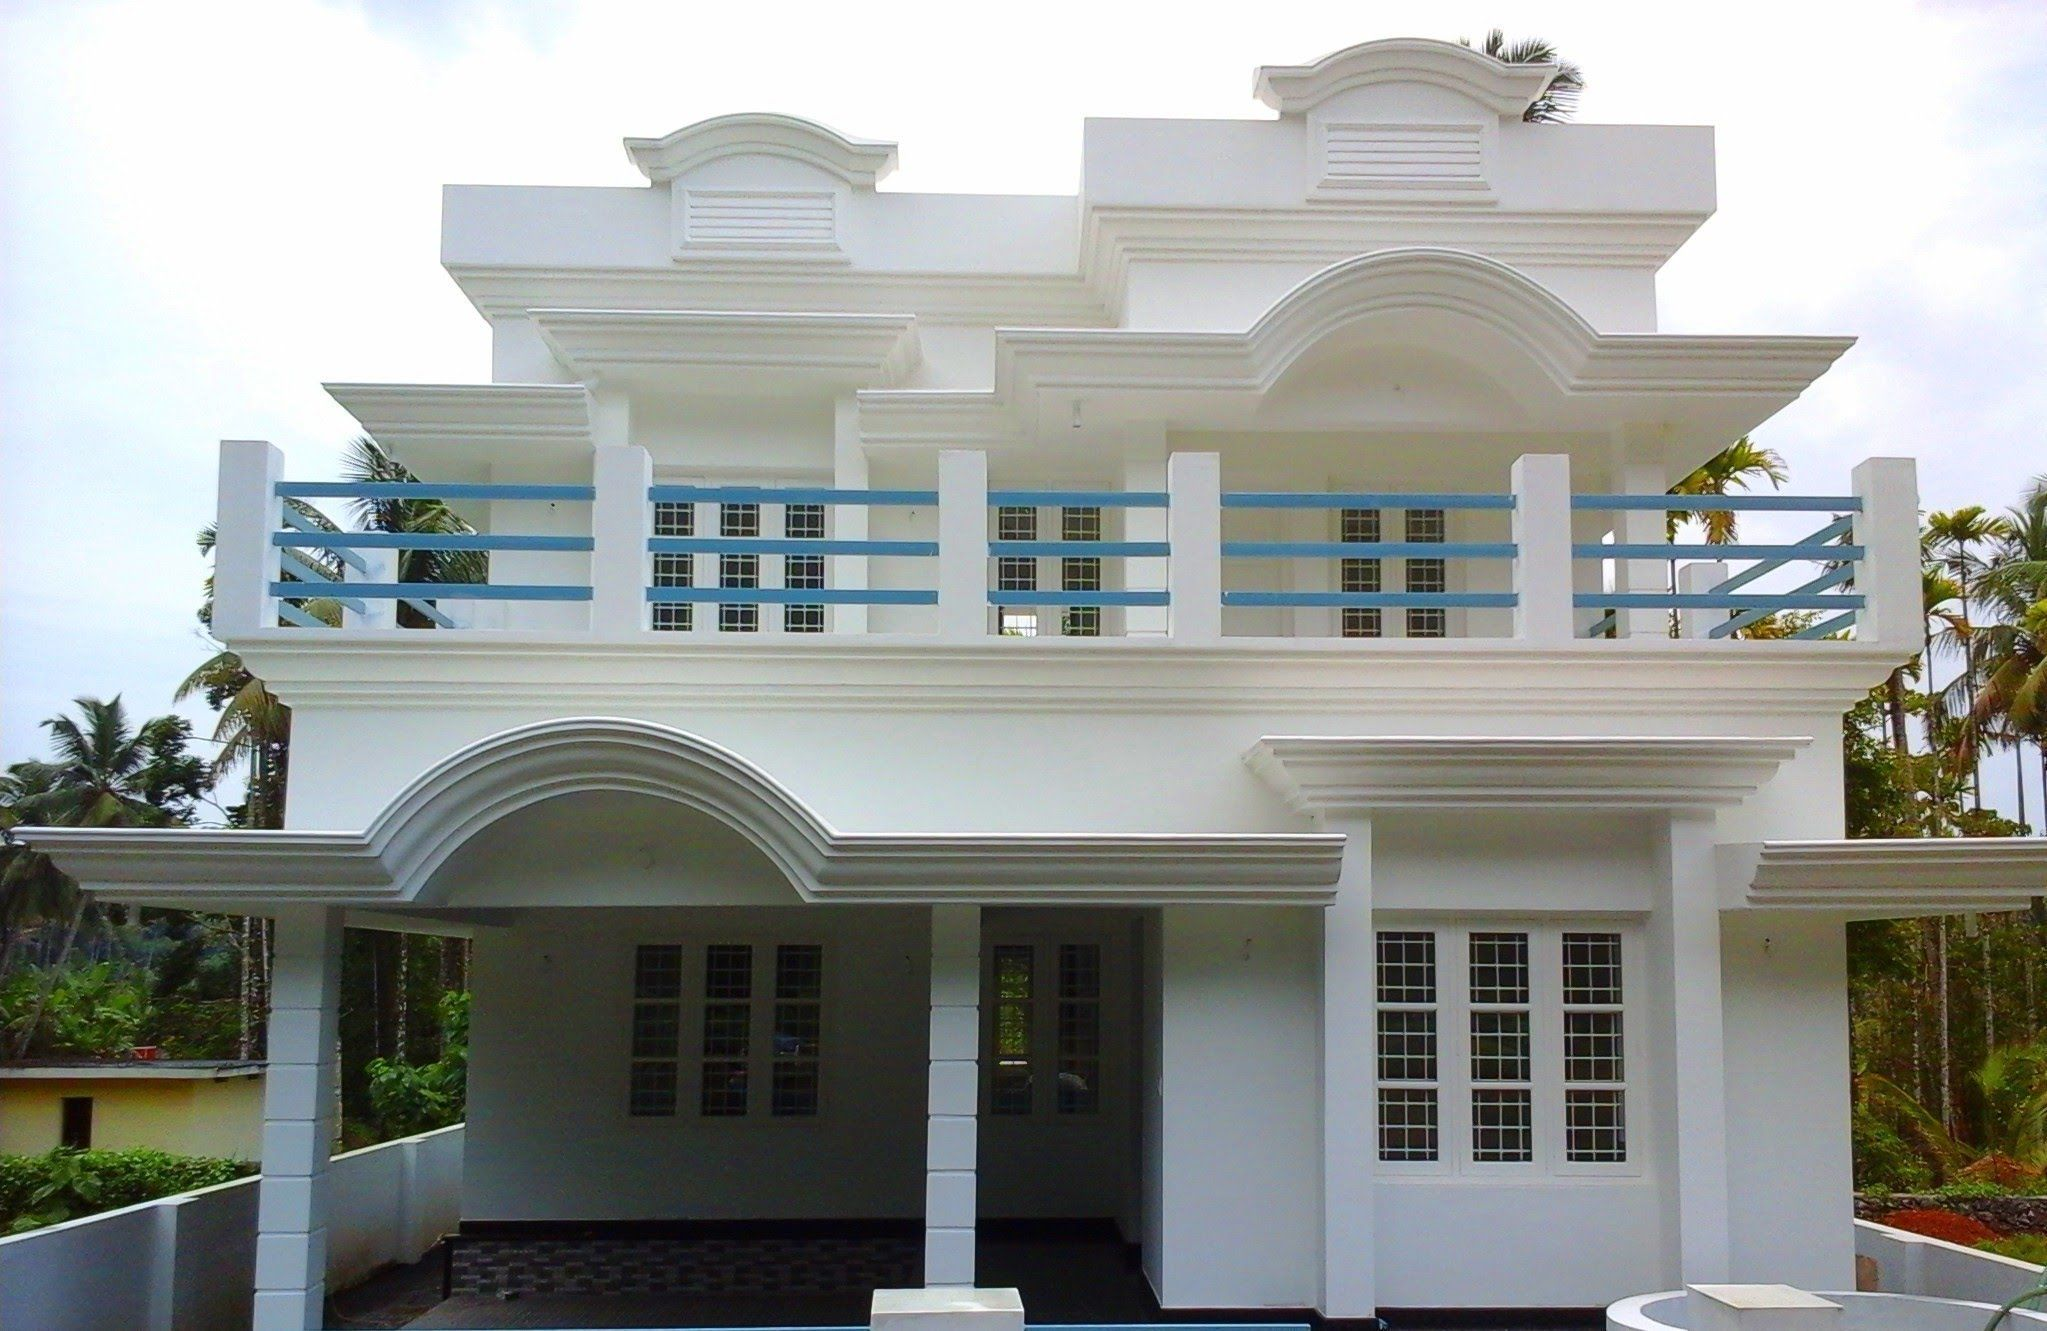 1000 Sq Ft Indian House | Modern house plans, Village ...